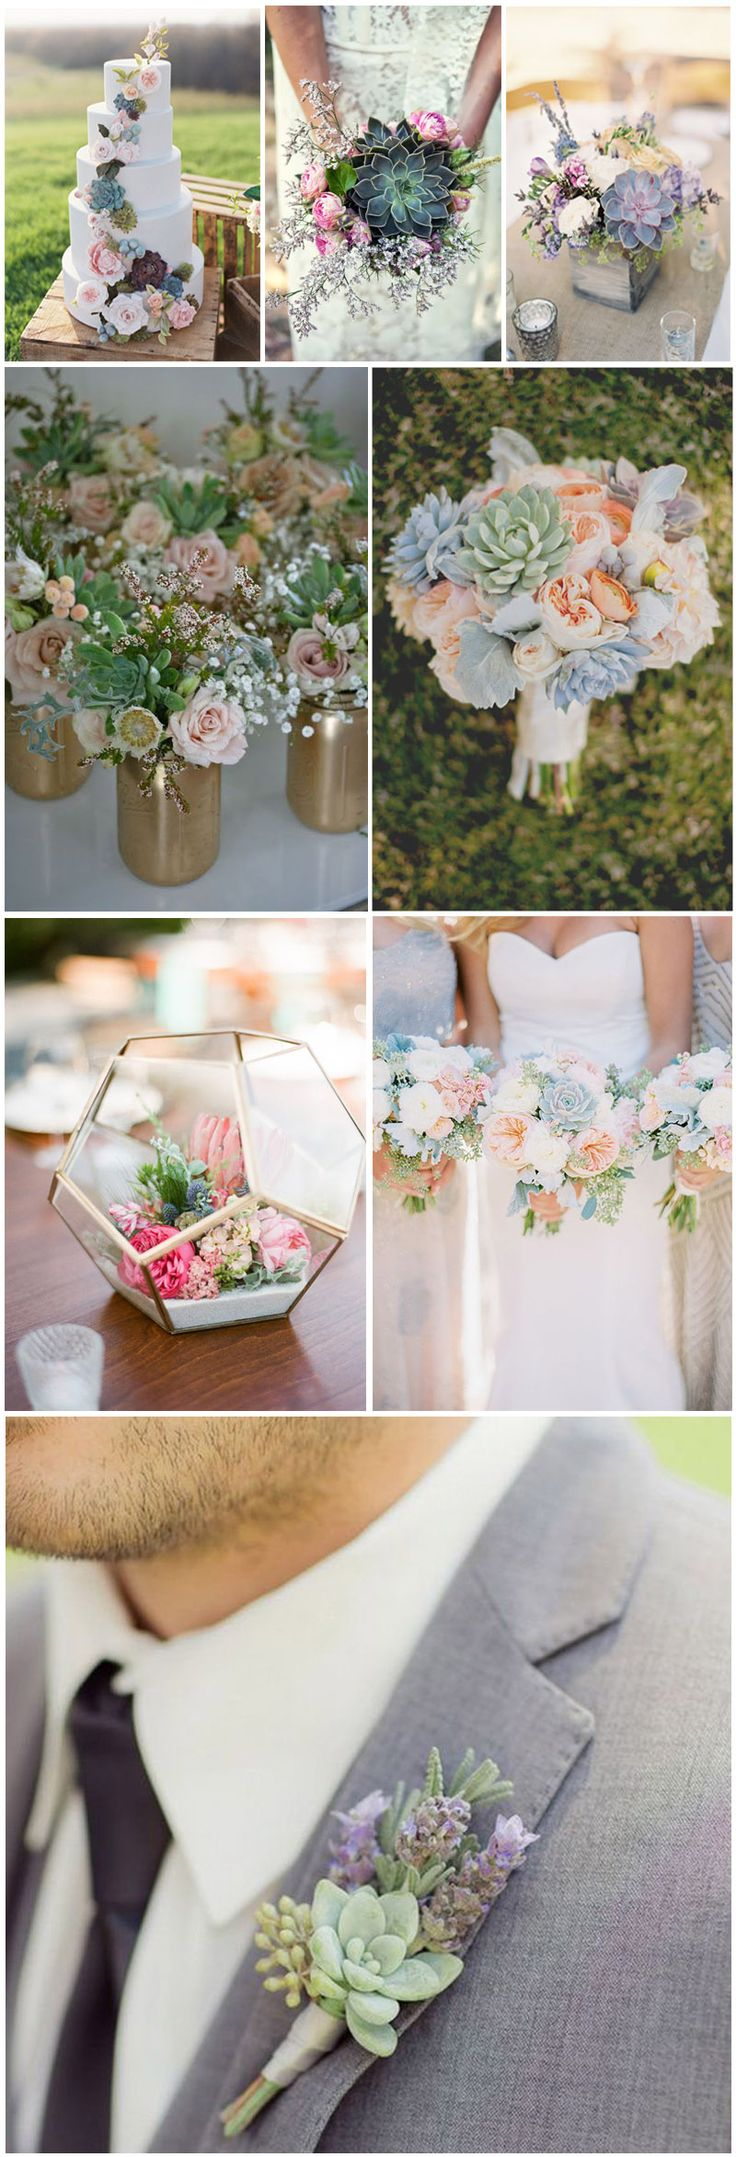 Wedding Flowers » Succulent»    Top 10 Flowers Themed Wedding for Outdoor Ceremony » ❤️ See more:    http://www.weddinginclude.com/2017/06/flowers-themed-wedding-for-outdoor-ceremony/